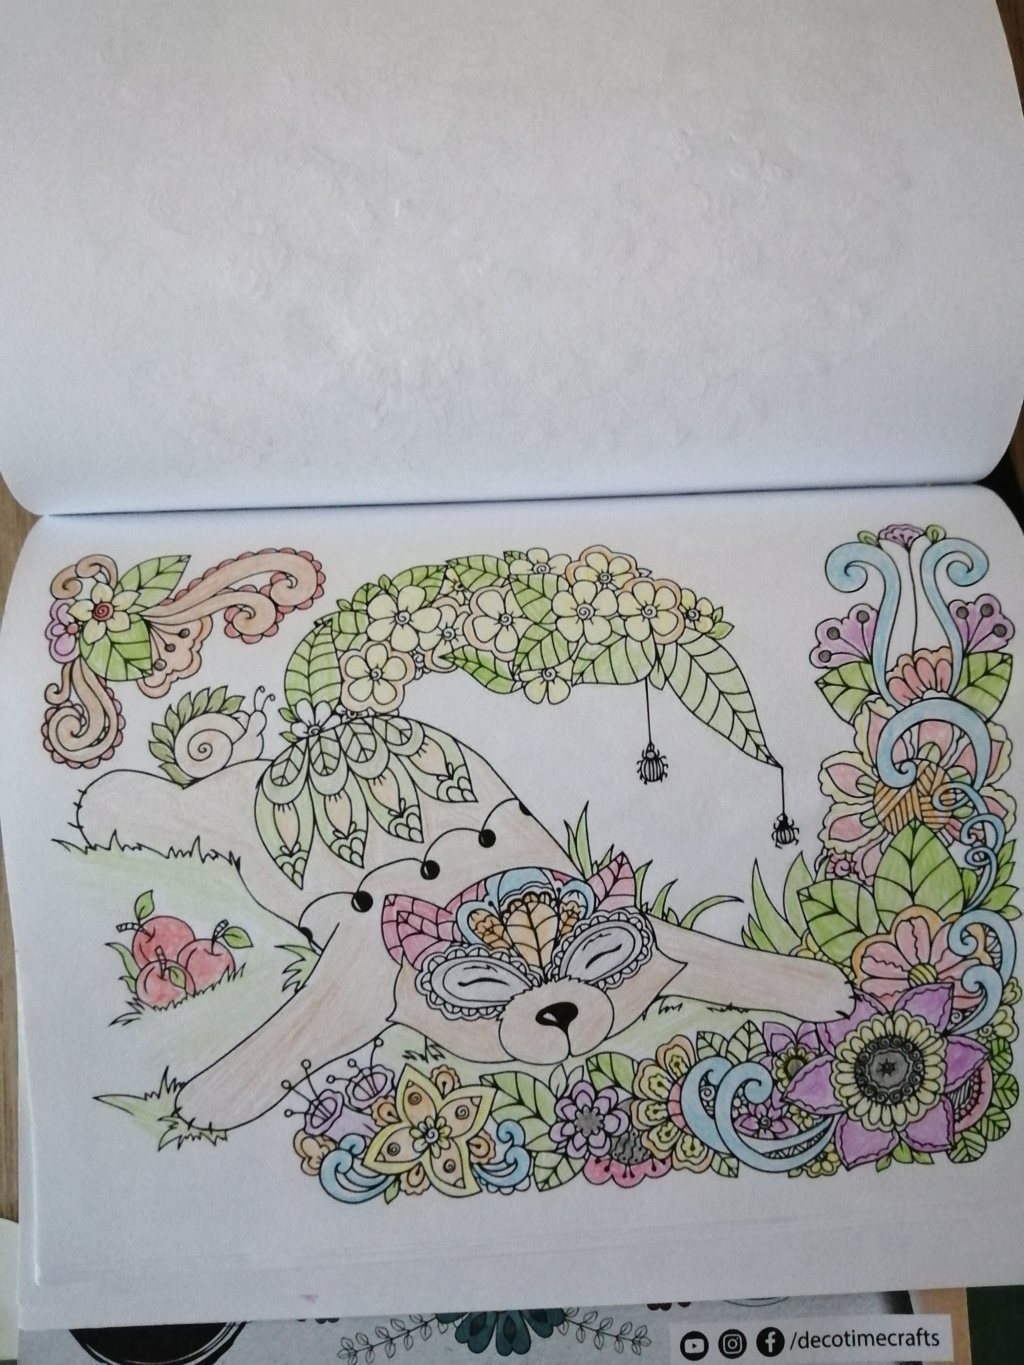 coloriage anti-stress pour adulte - Page 15 01511